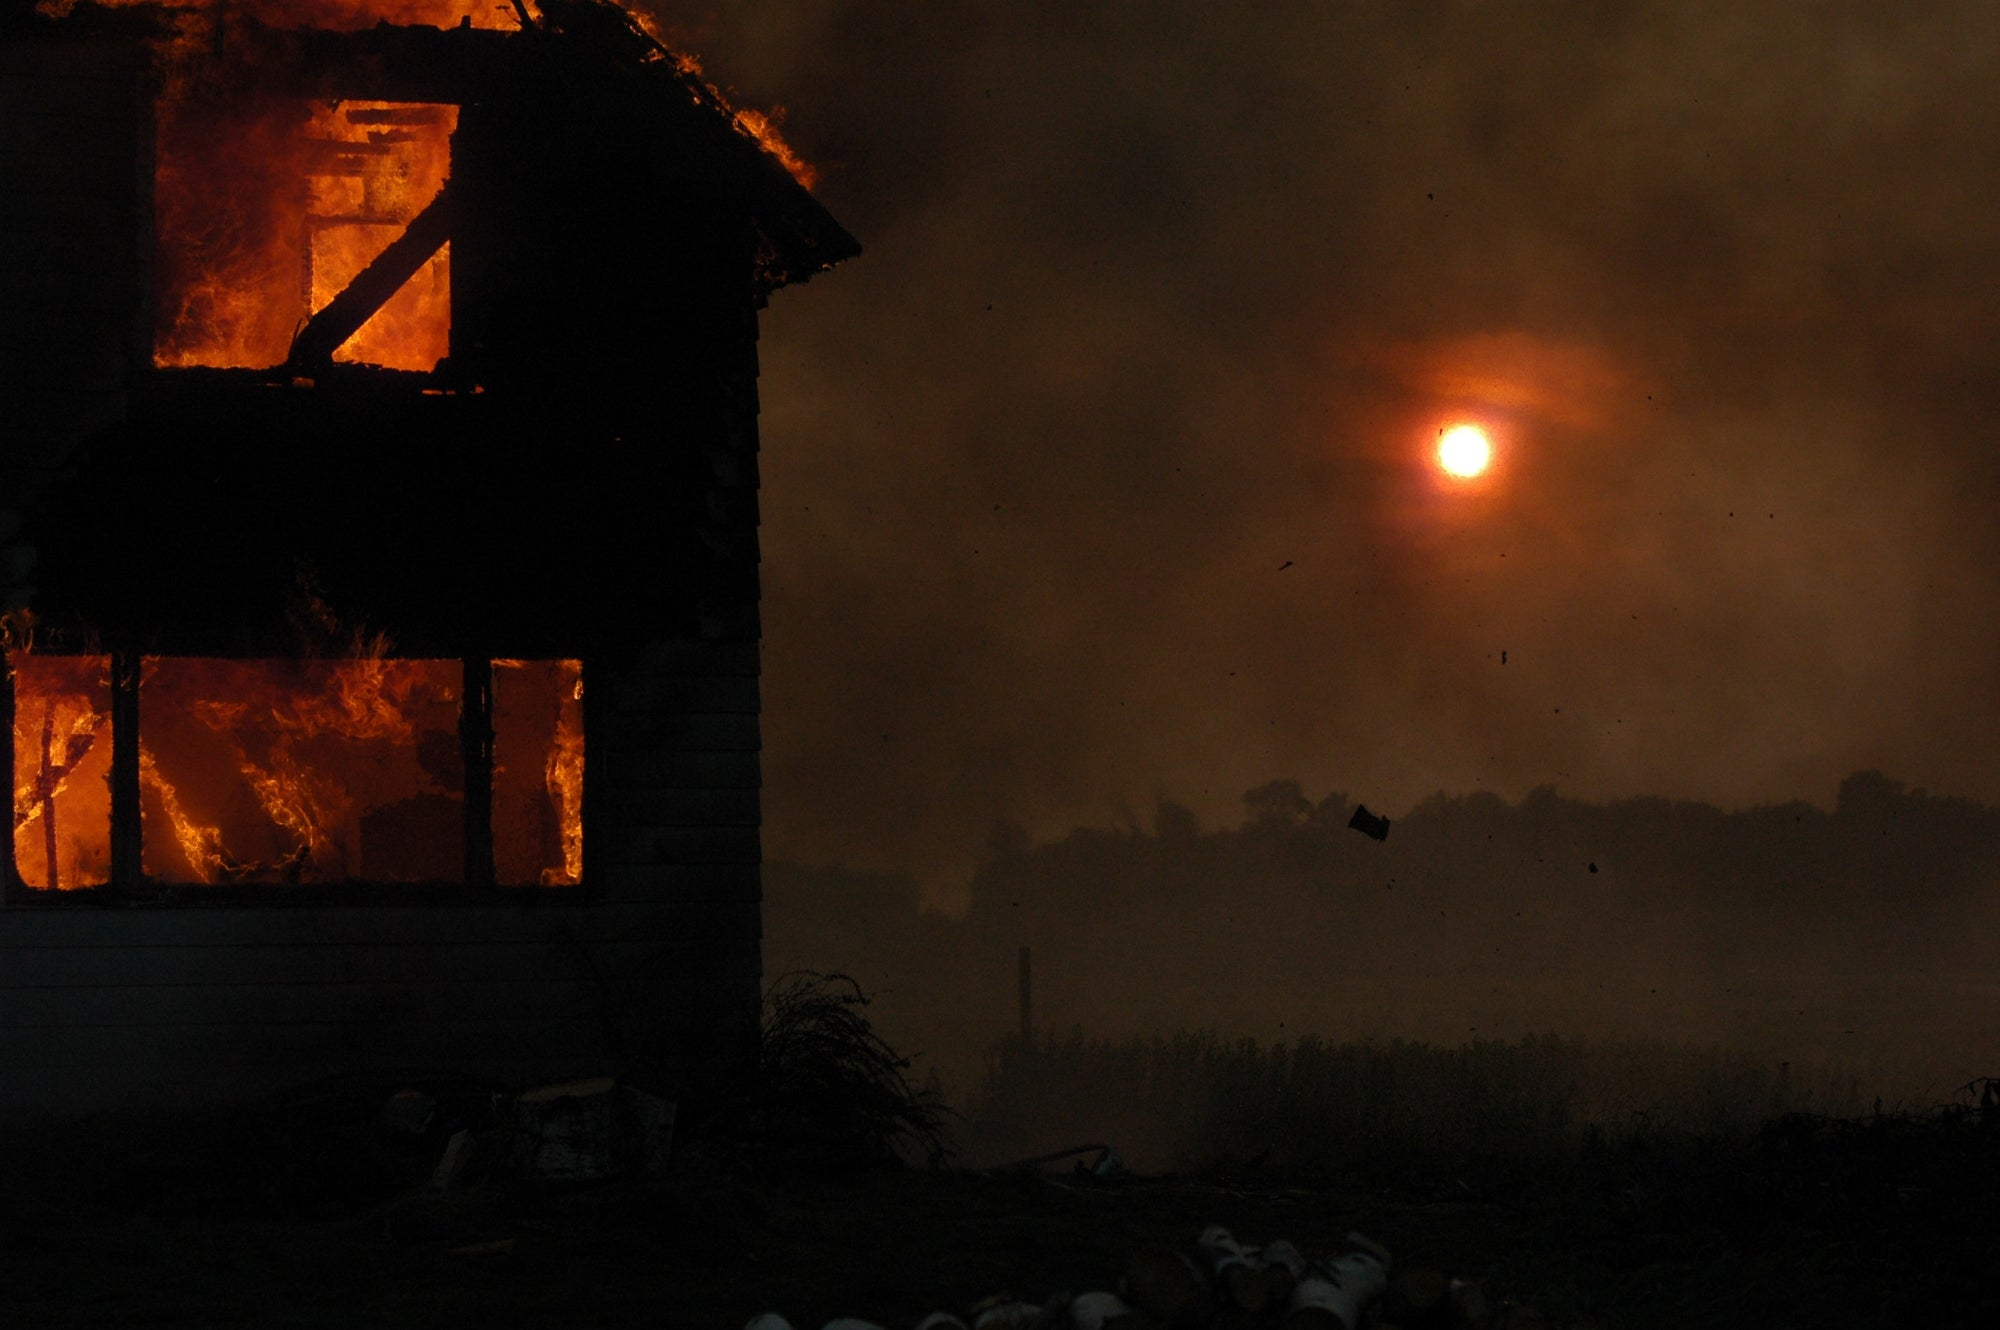 Curious about the most common causes of house fires? Keep reading as we count down the top ten!